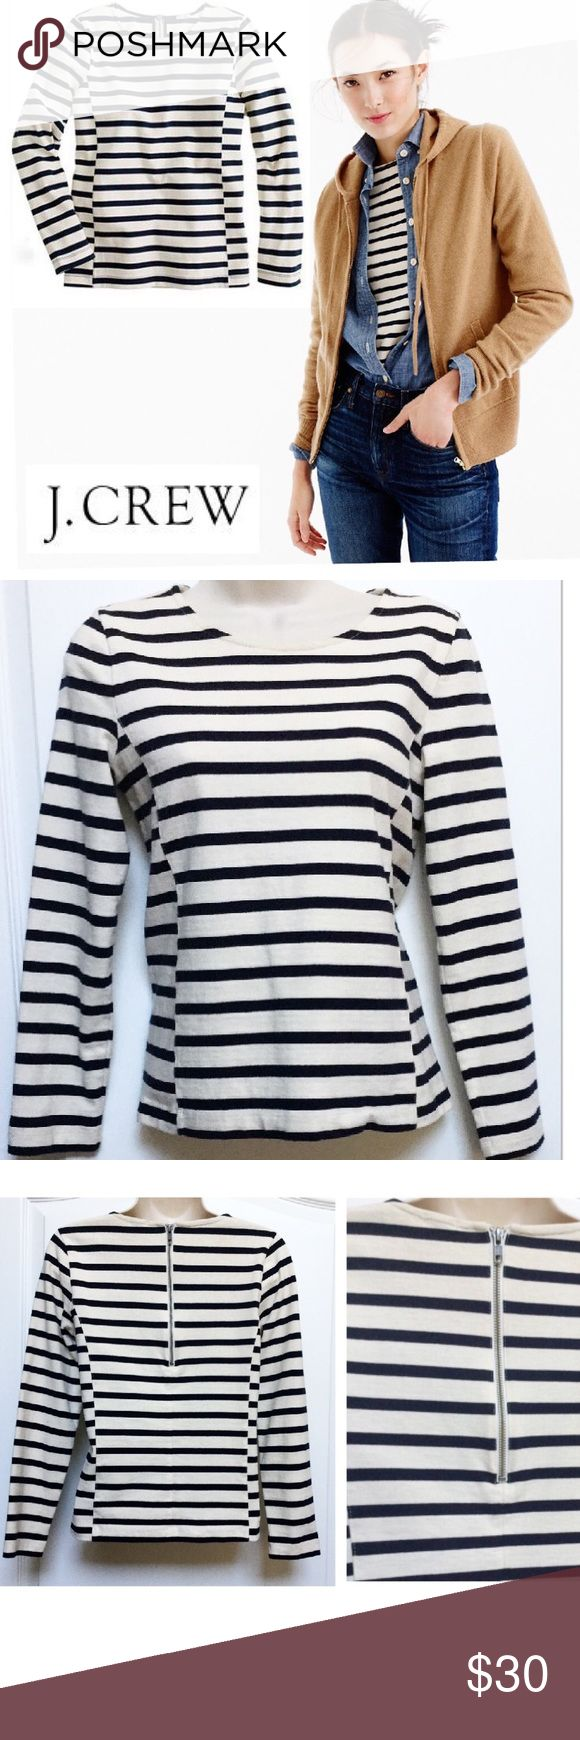 """J. Crew Structured Back Zip Top ✨FINAL J. Crew Stripe (Nautical) Navy/White Long Sleeve Top New Take on a forever classic  Feminine fit & artfully placed structured side panel seams Bracelet Sleeves & flirty exposed back zip  100% Cotton -Structured for a clean-lined silhouette Sz: XS Measures: (flat w/o stretch) 17.5"""" chest- 22"""" Length -22"""" sleeves LIKE NEW!   FINAL= Price at LOWEST LOWBALL OFFERS= Ignored Thanks & Happy Poshing! J. Crew Tops"""